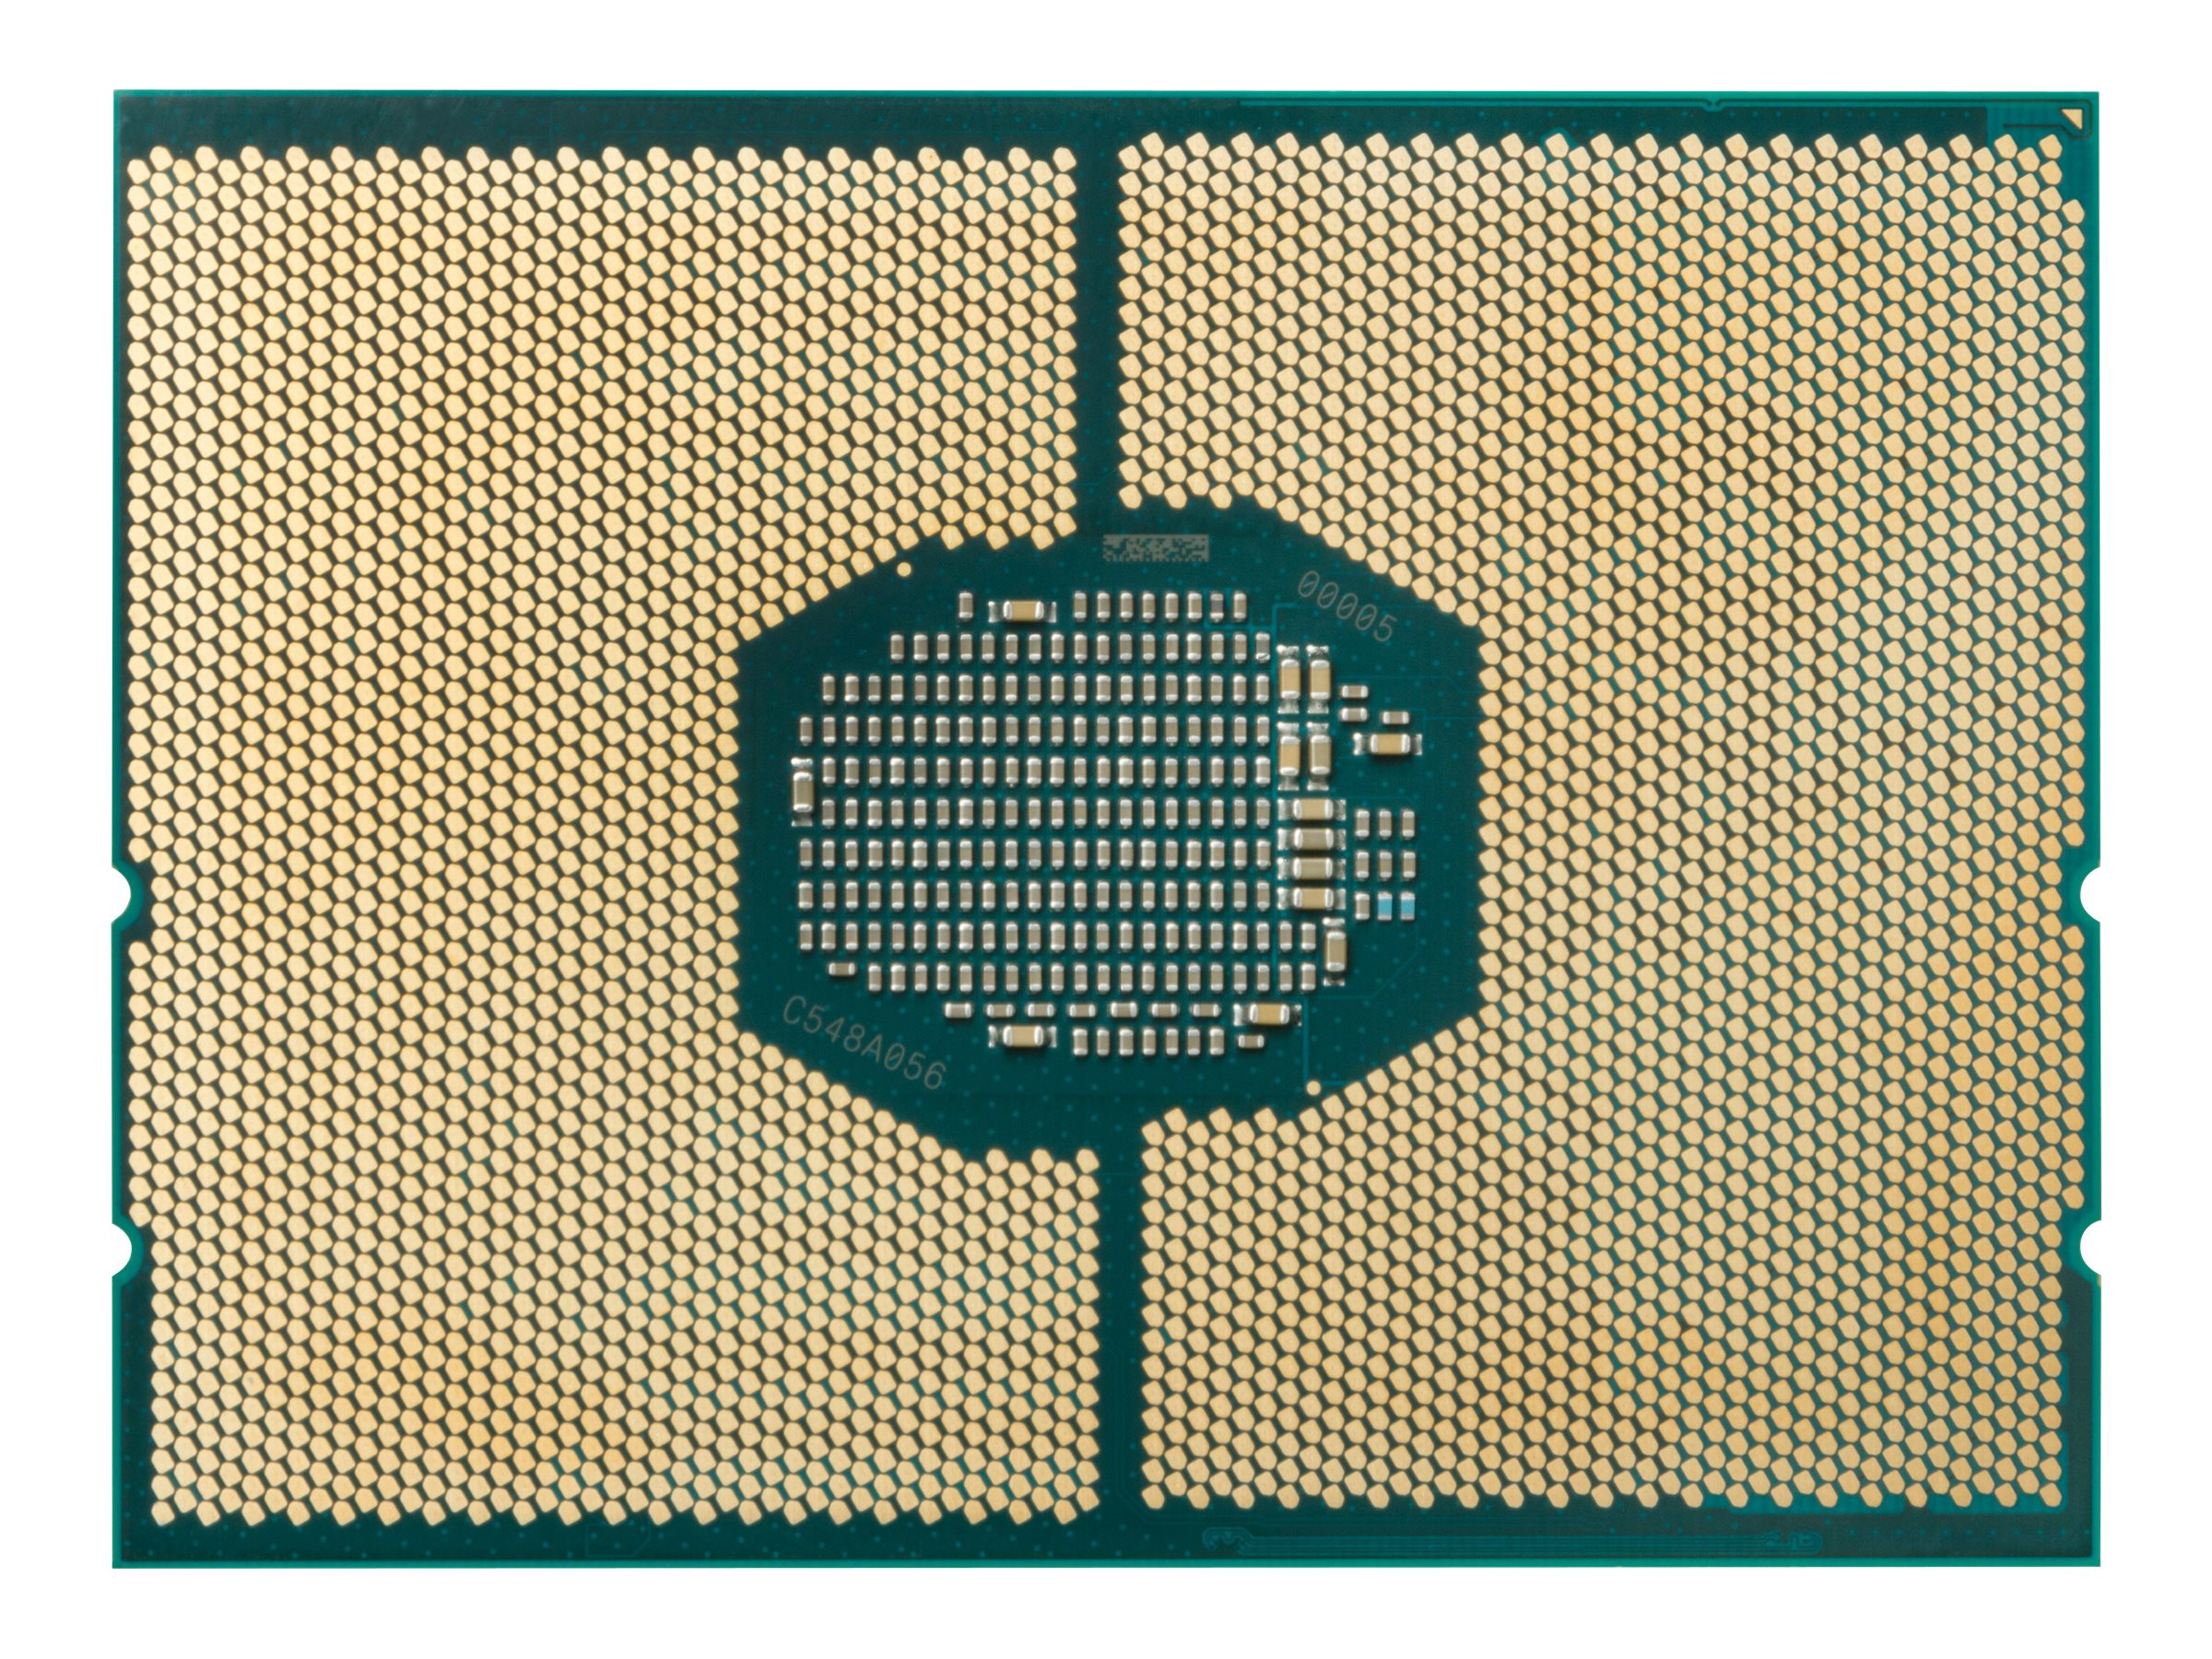 Intel Xeon Platinum 8160M / 2.1 GHz processor